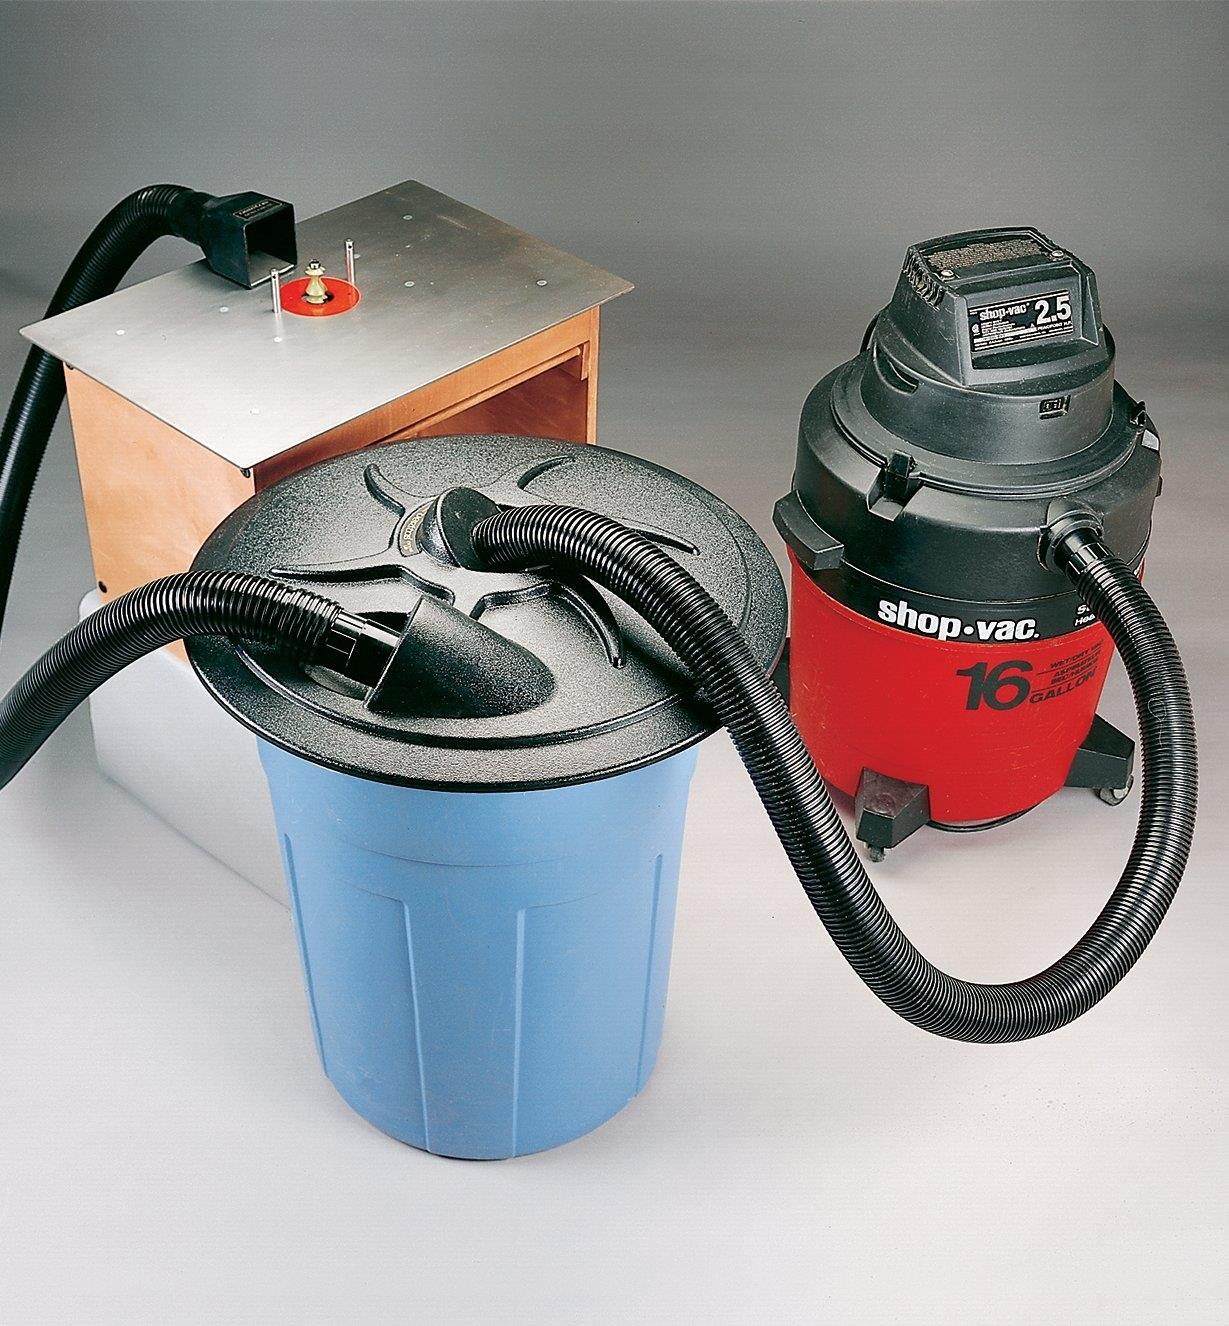 Cyclone lid on a garbage pail connected by hoses between a router table and a shop vac